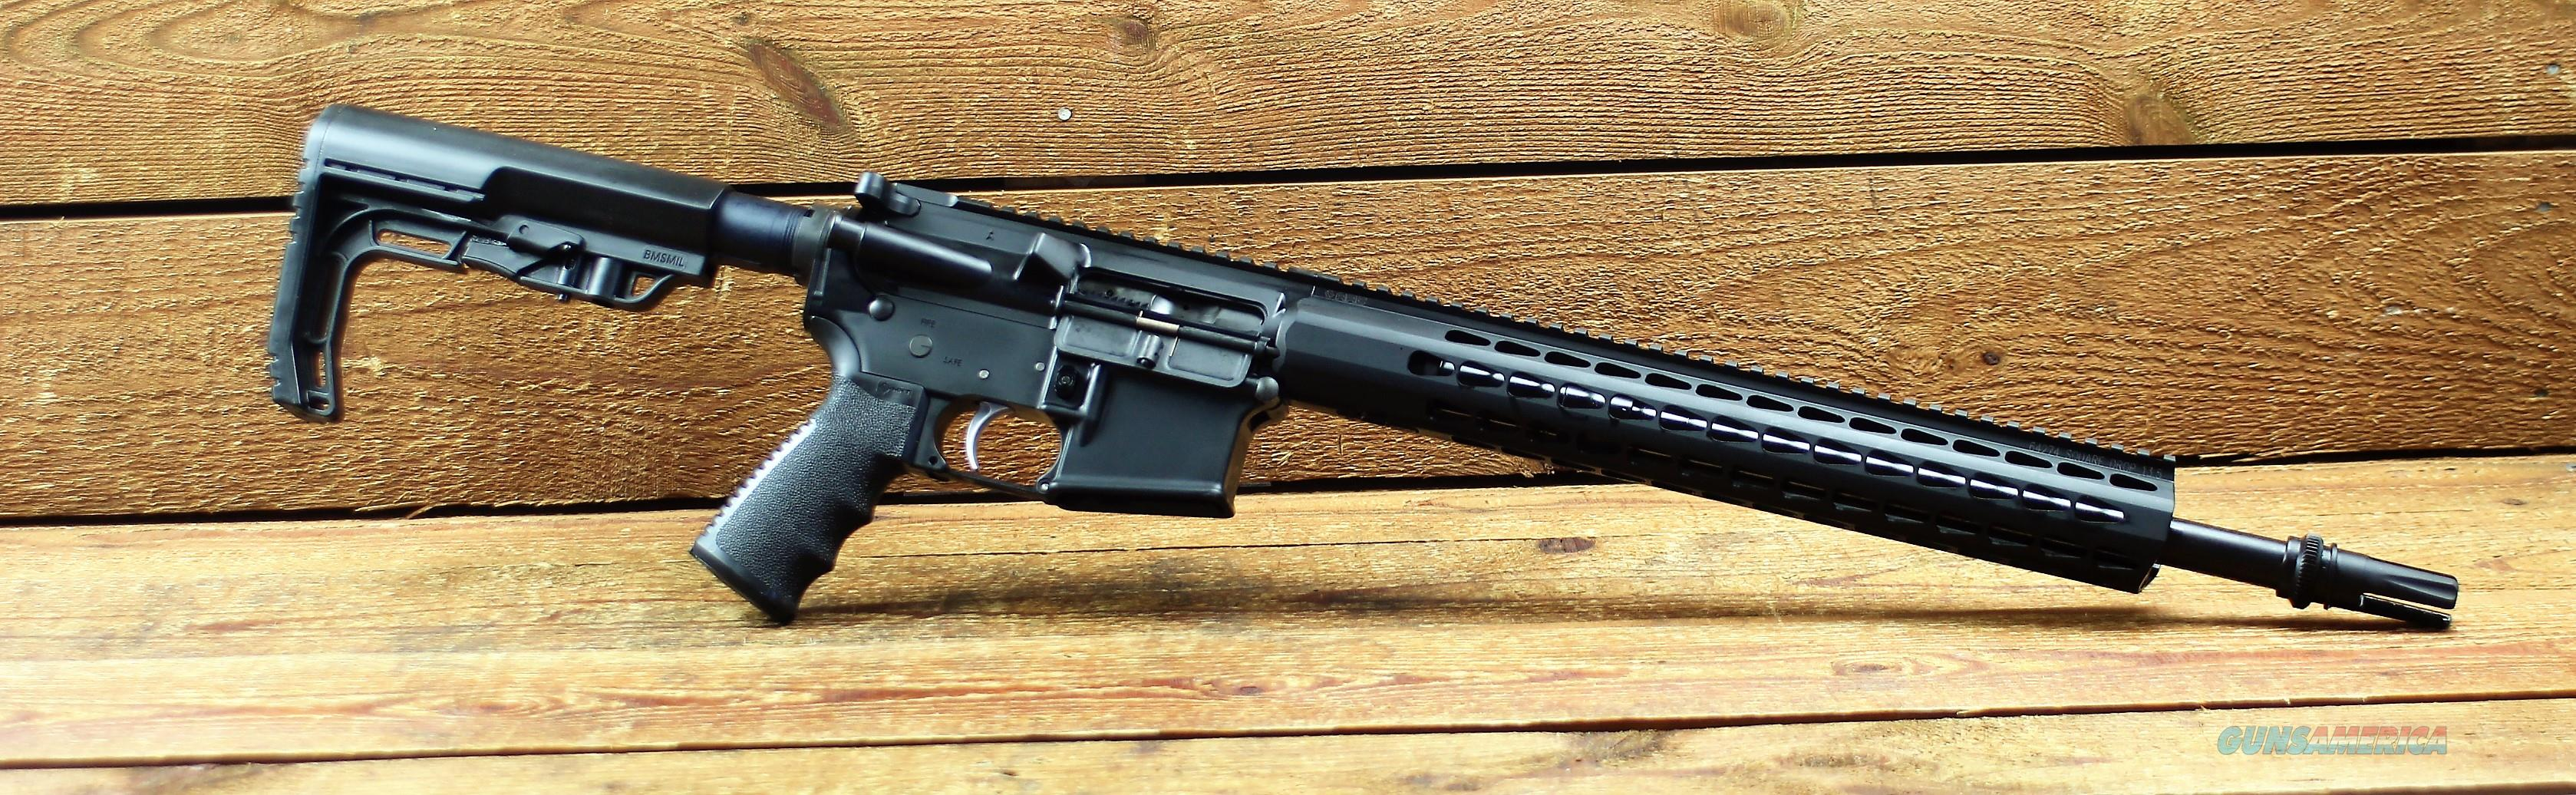 $82 SALE EASY PAY BUSHMASTER MINIMALIST AR15 Firepower Carbine  300 AAC  BlackOut stock lightweight